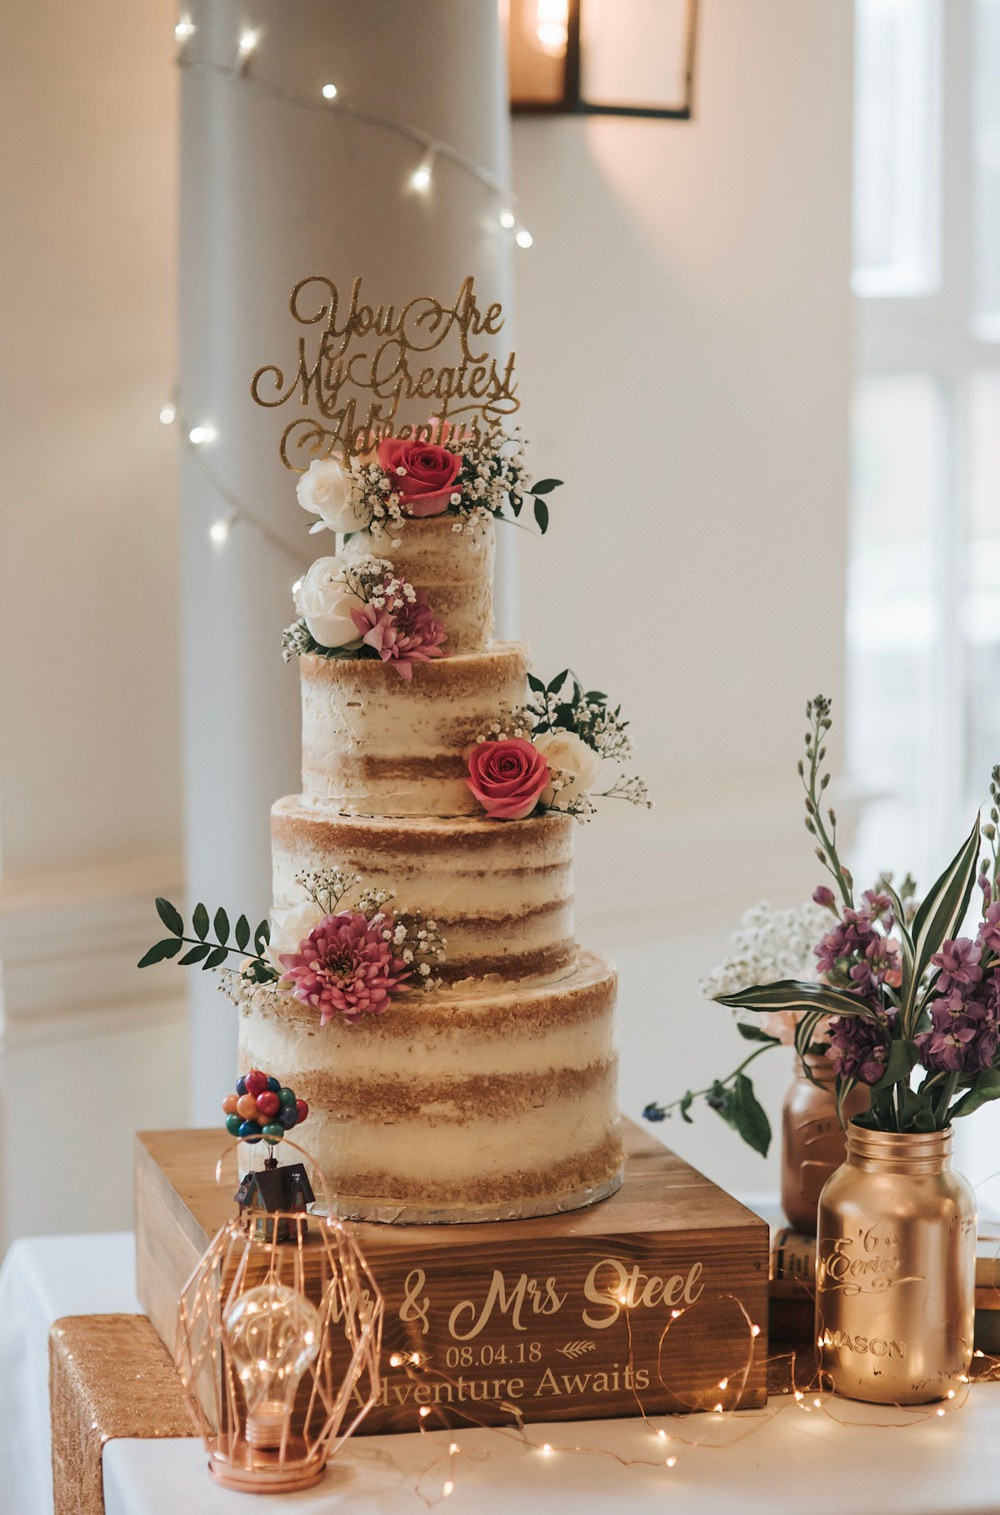 Naked Cake Tall Buttercream Semi Flowers Glitter Gold Quote Topper Folly Farmhouse Mackworth Wedding Pear&Bear Photography